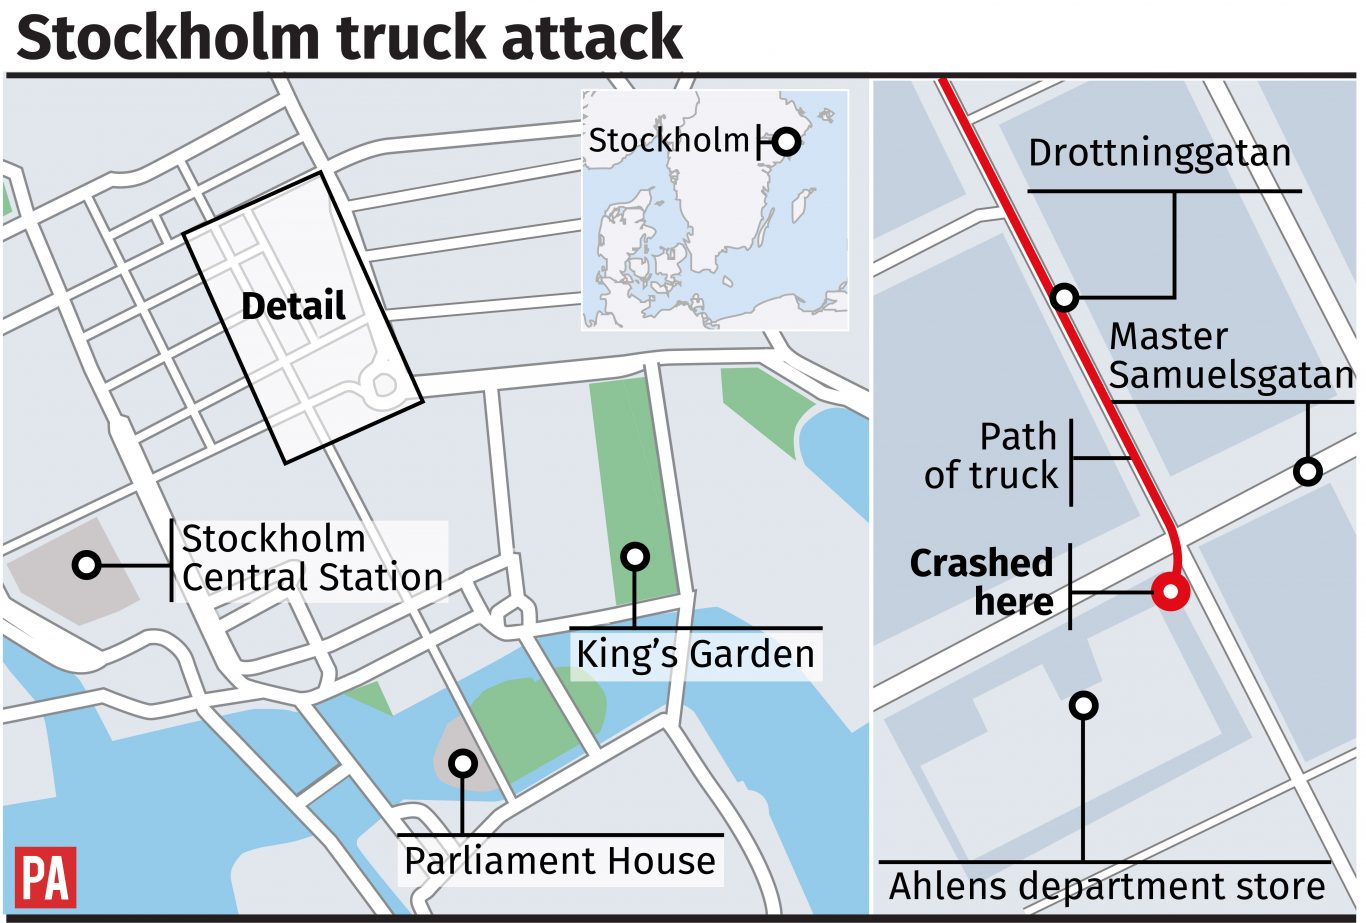 Stockholm truck attack, route of the truck